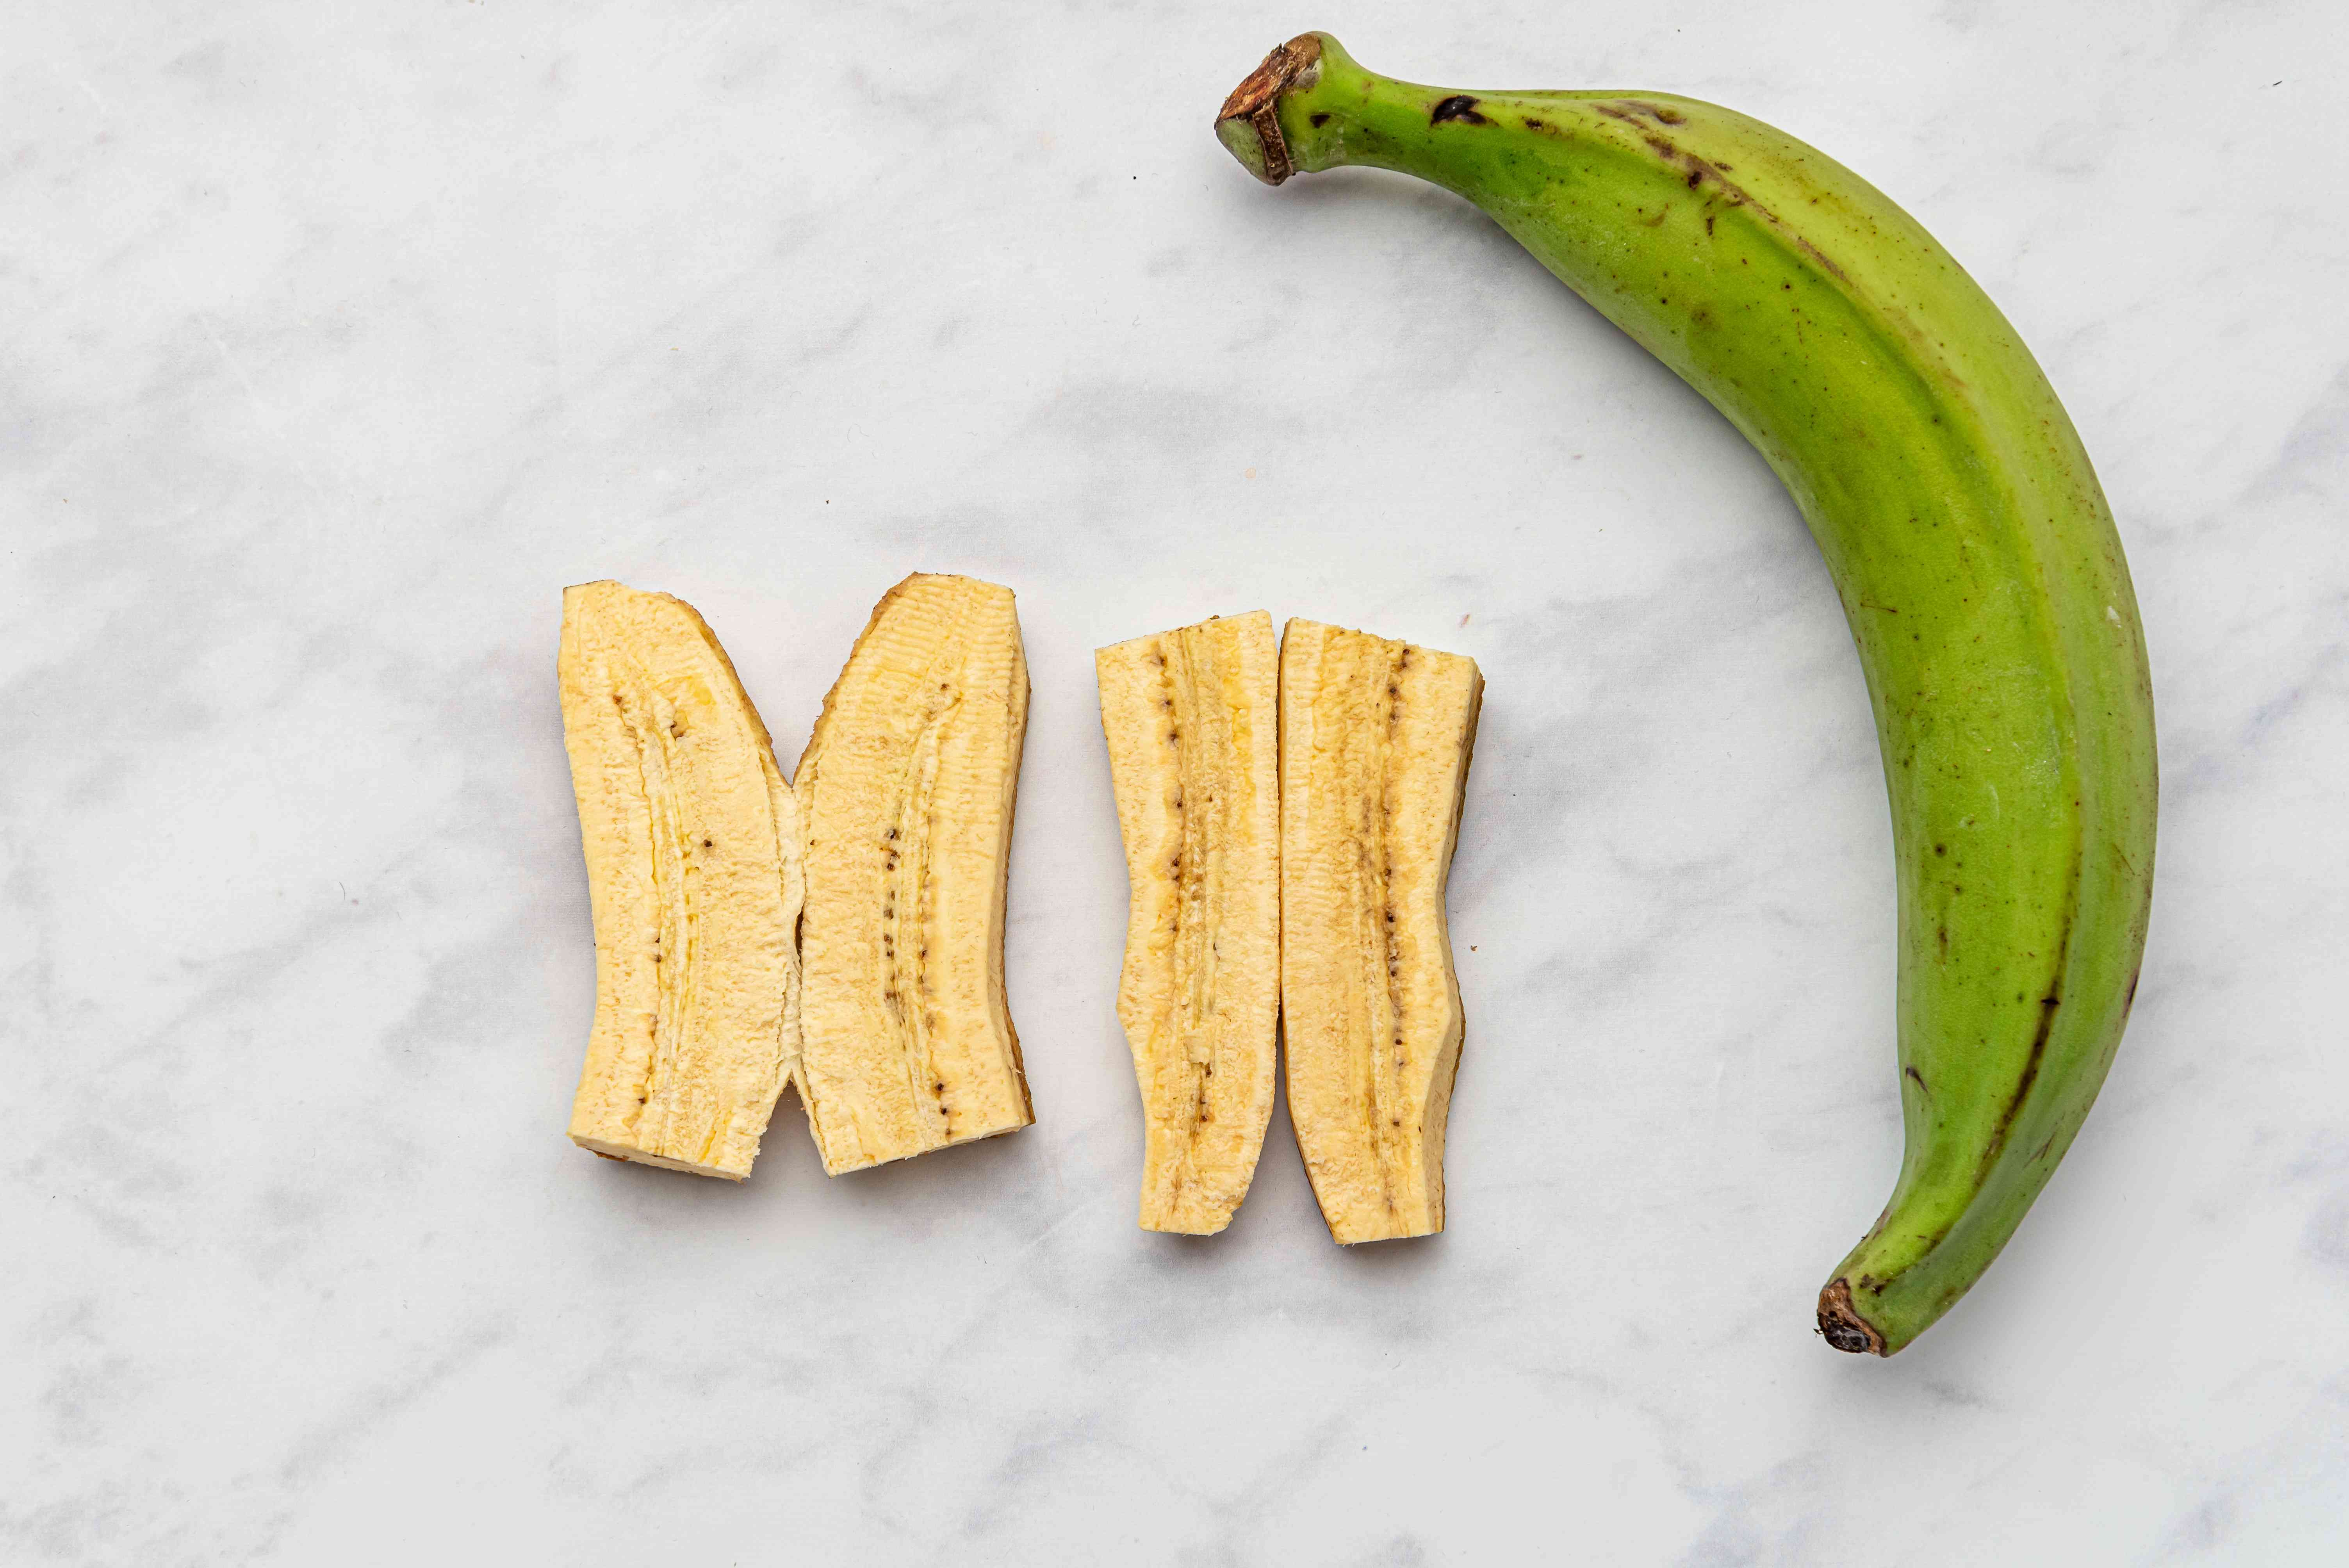 Peel the plantains, cut them in half, then cut each half lengthwise